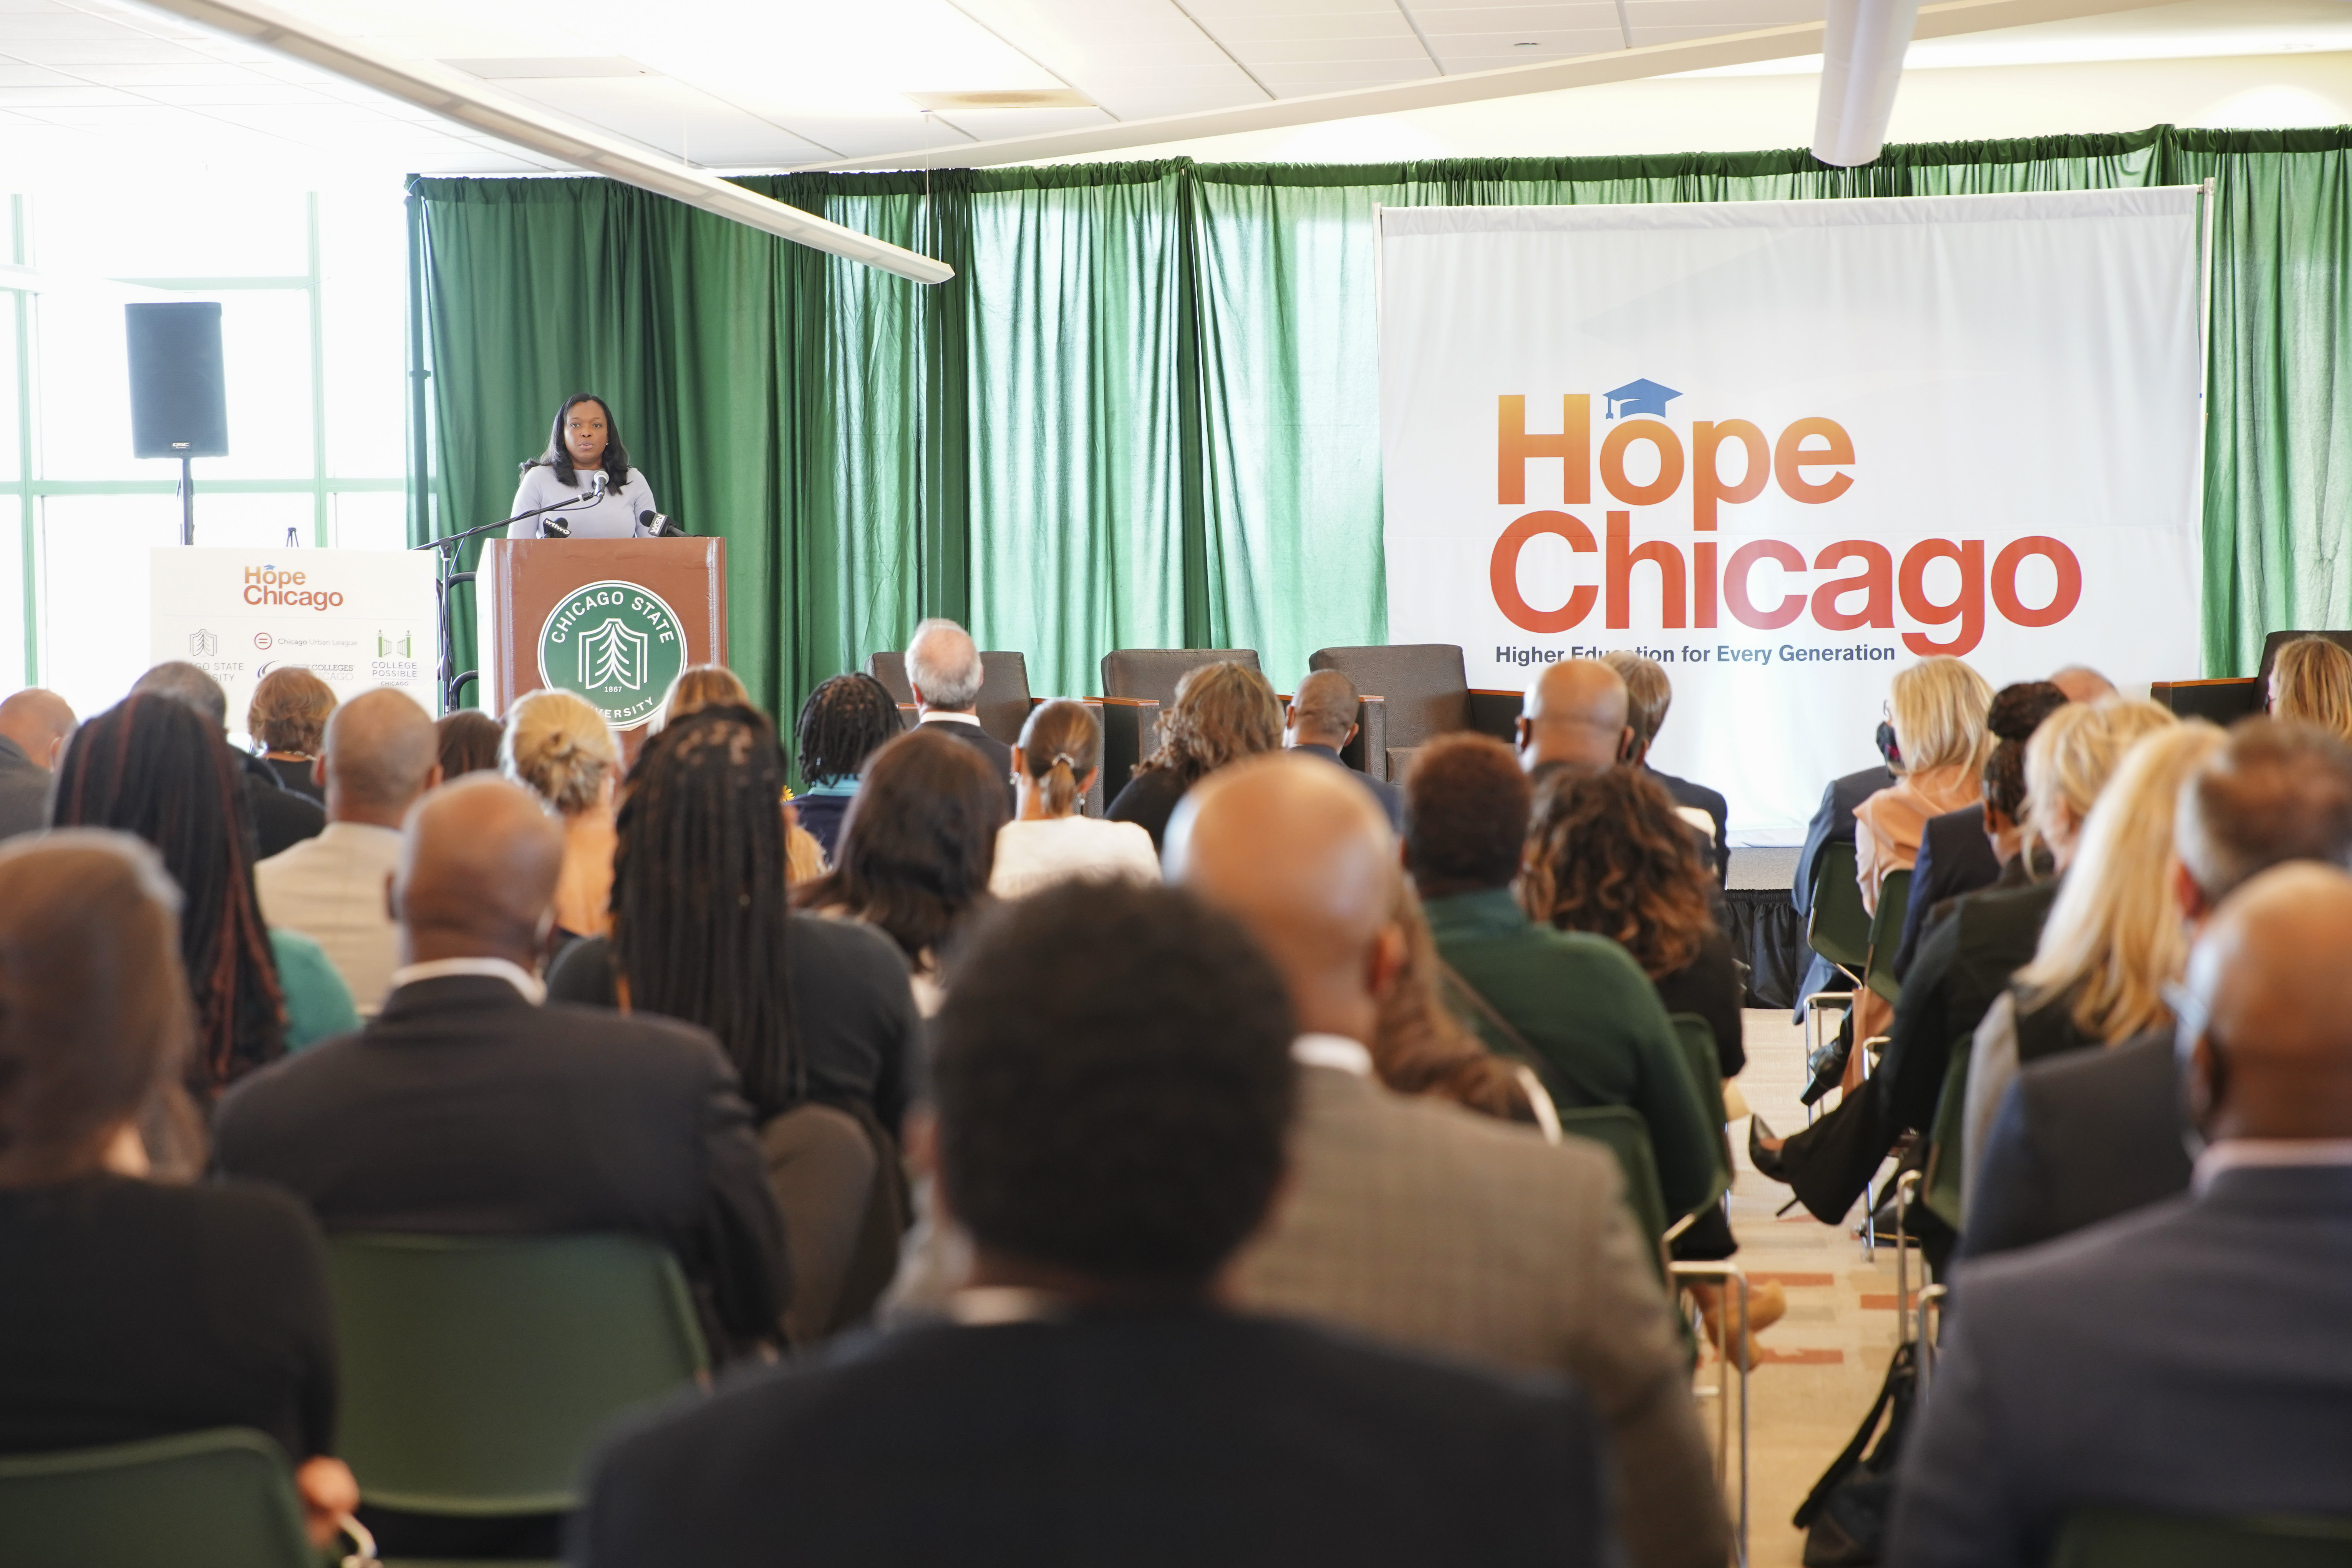 Janice Jackson speaks about Hope Chicago, a new scholarship fund that supports Chicago students and their families by providing a debt-free post-secondary education and wraparound support, during a launch event, Monday, Oct. 18 at Chicago State University in Rosemoor, 2021.